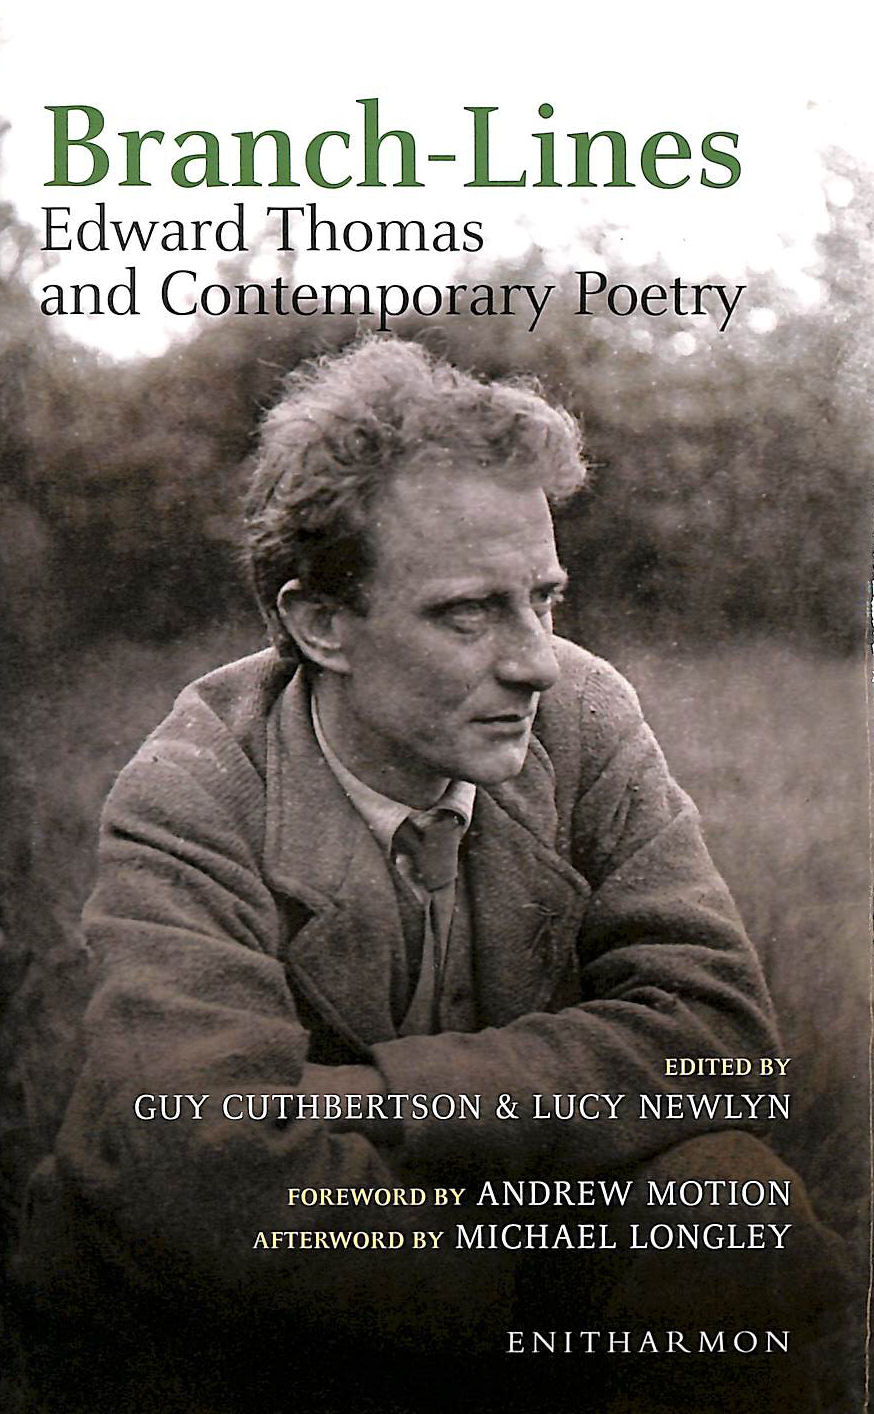 Image for Branch-lines: Edward Thomas and Contemporary Poetry